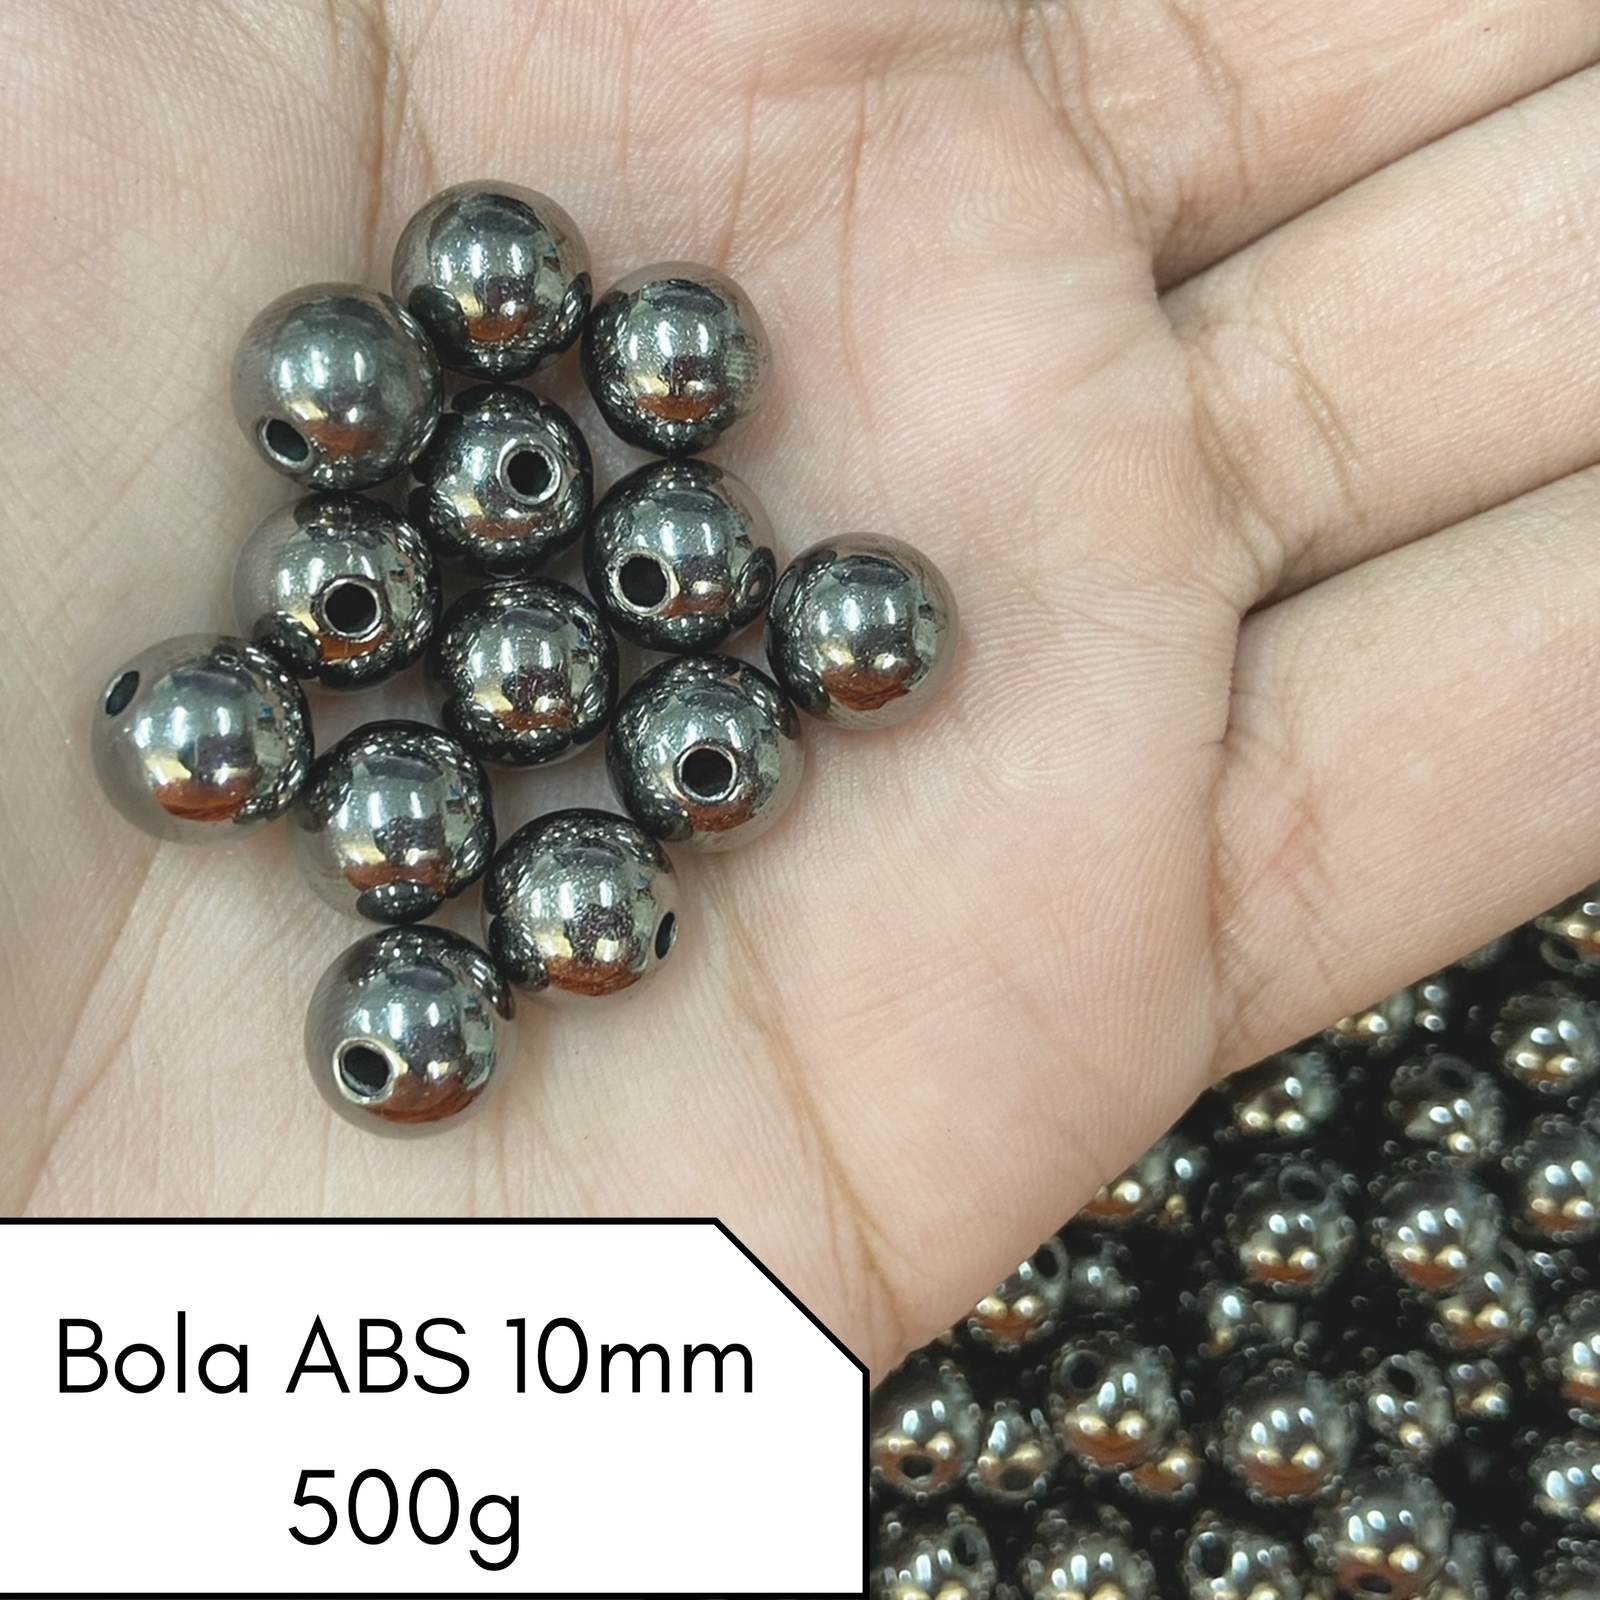 Bola ABS 10mm - 500g